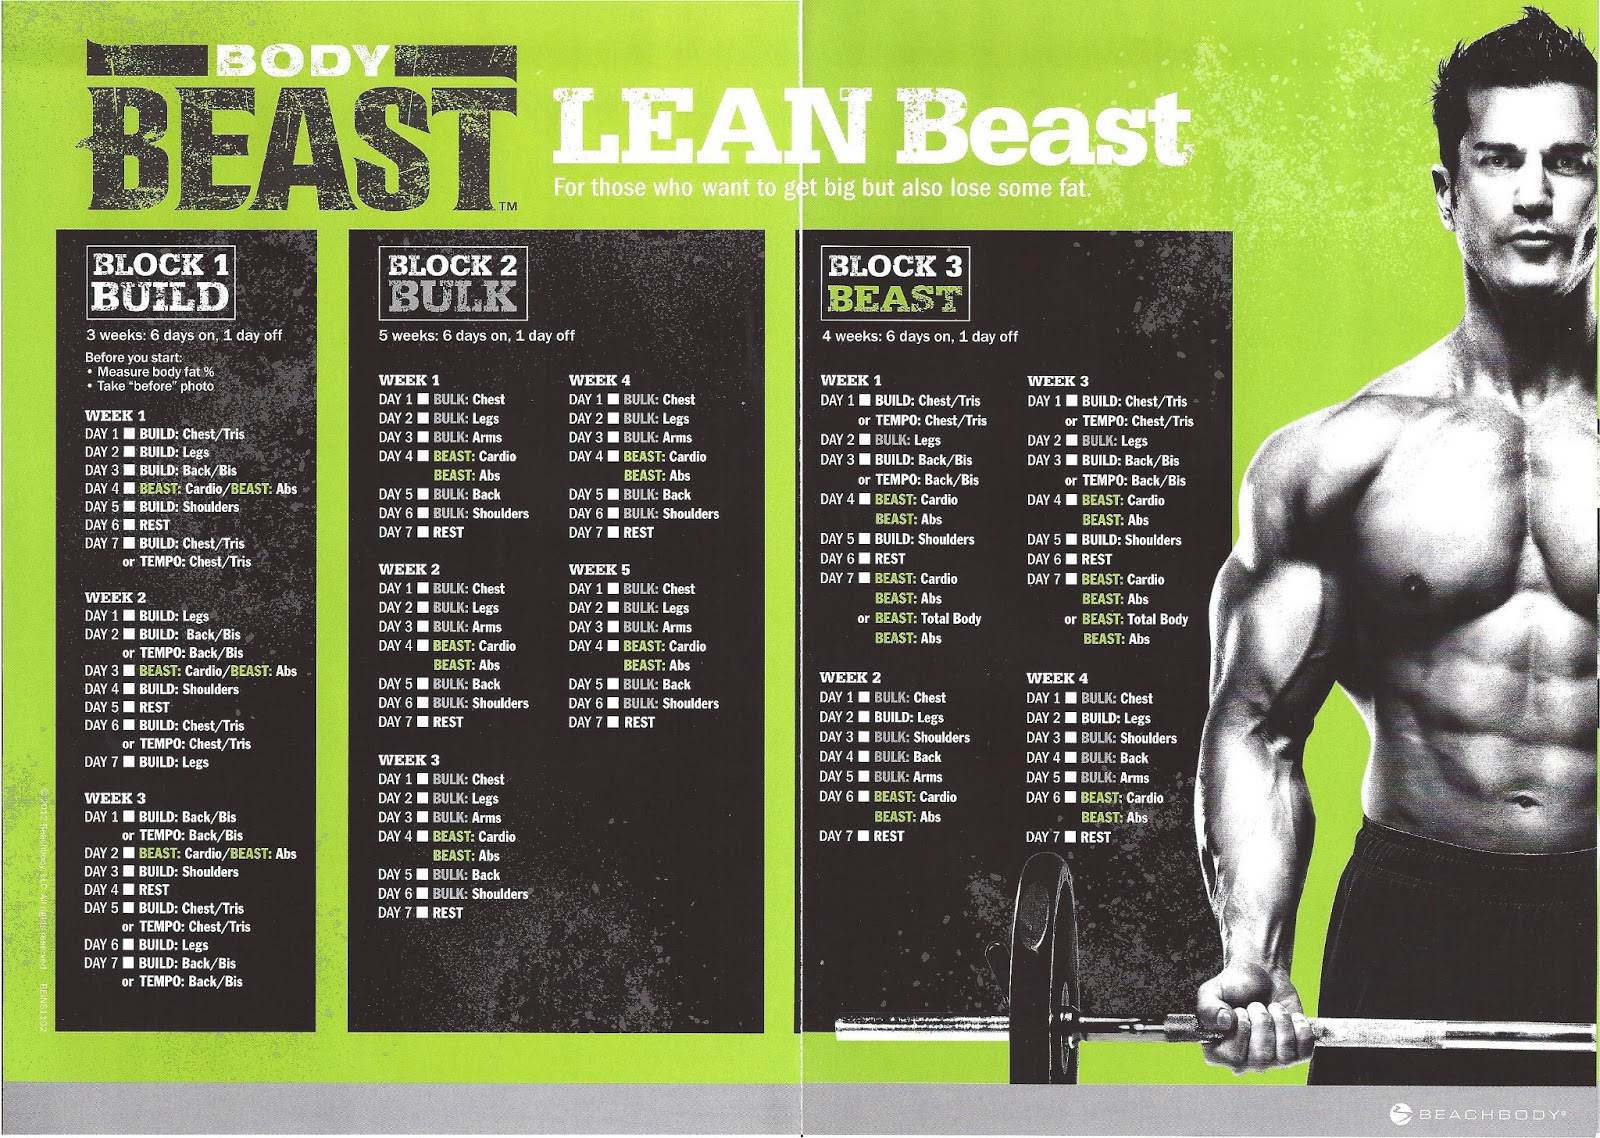 Body Beast Schedule Lean